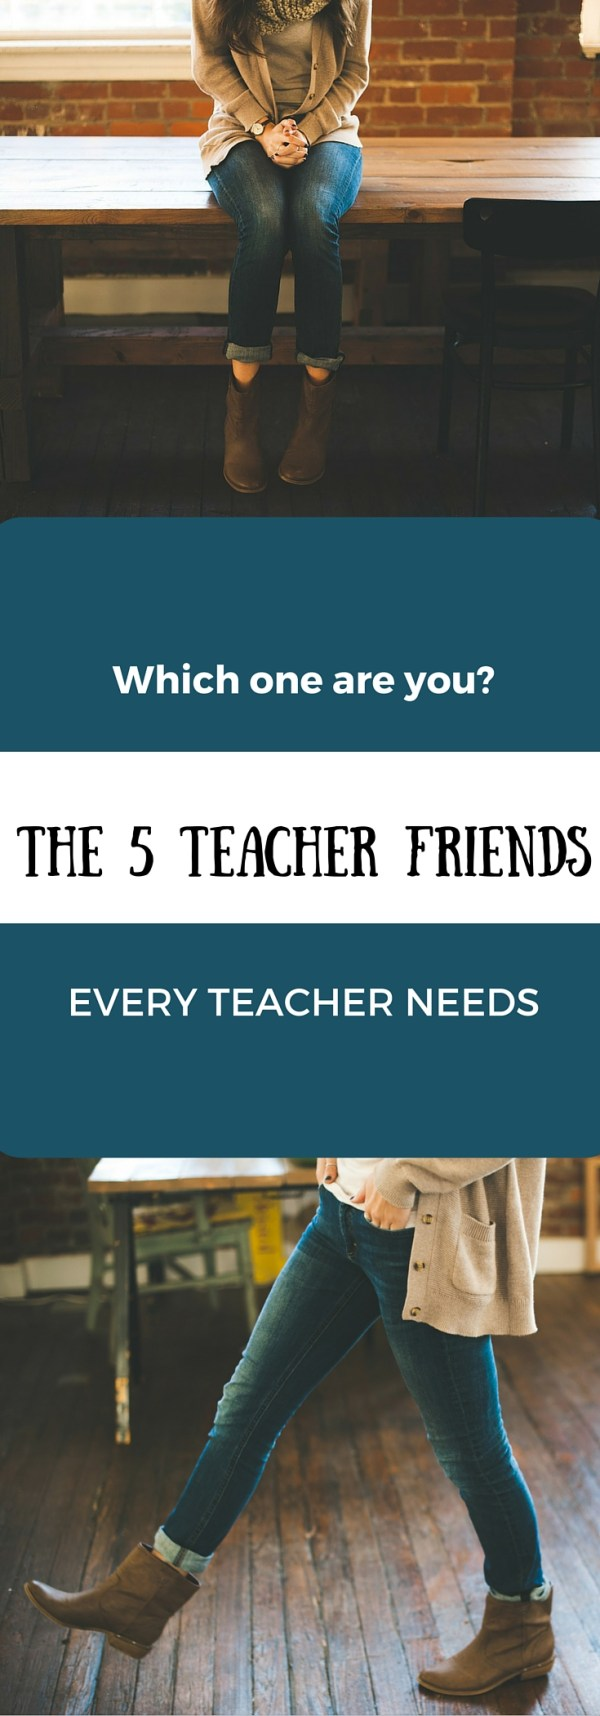 The 5 Types of Teacher Friends You Need - Teacher Tribe - Teachers - Teacher Professionalism - Friends - Friendship - The Gifted Gabber